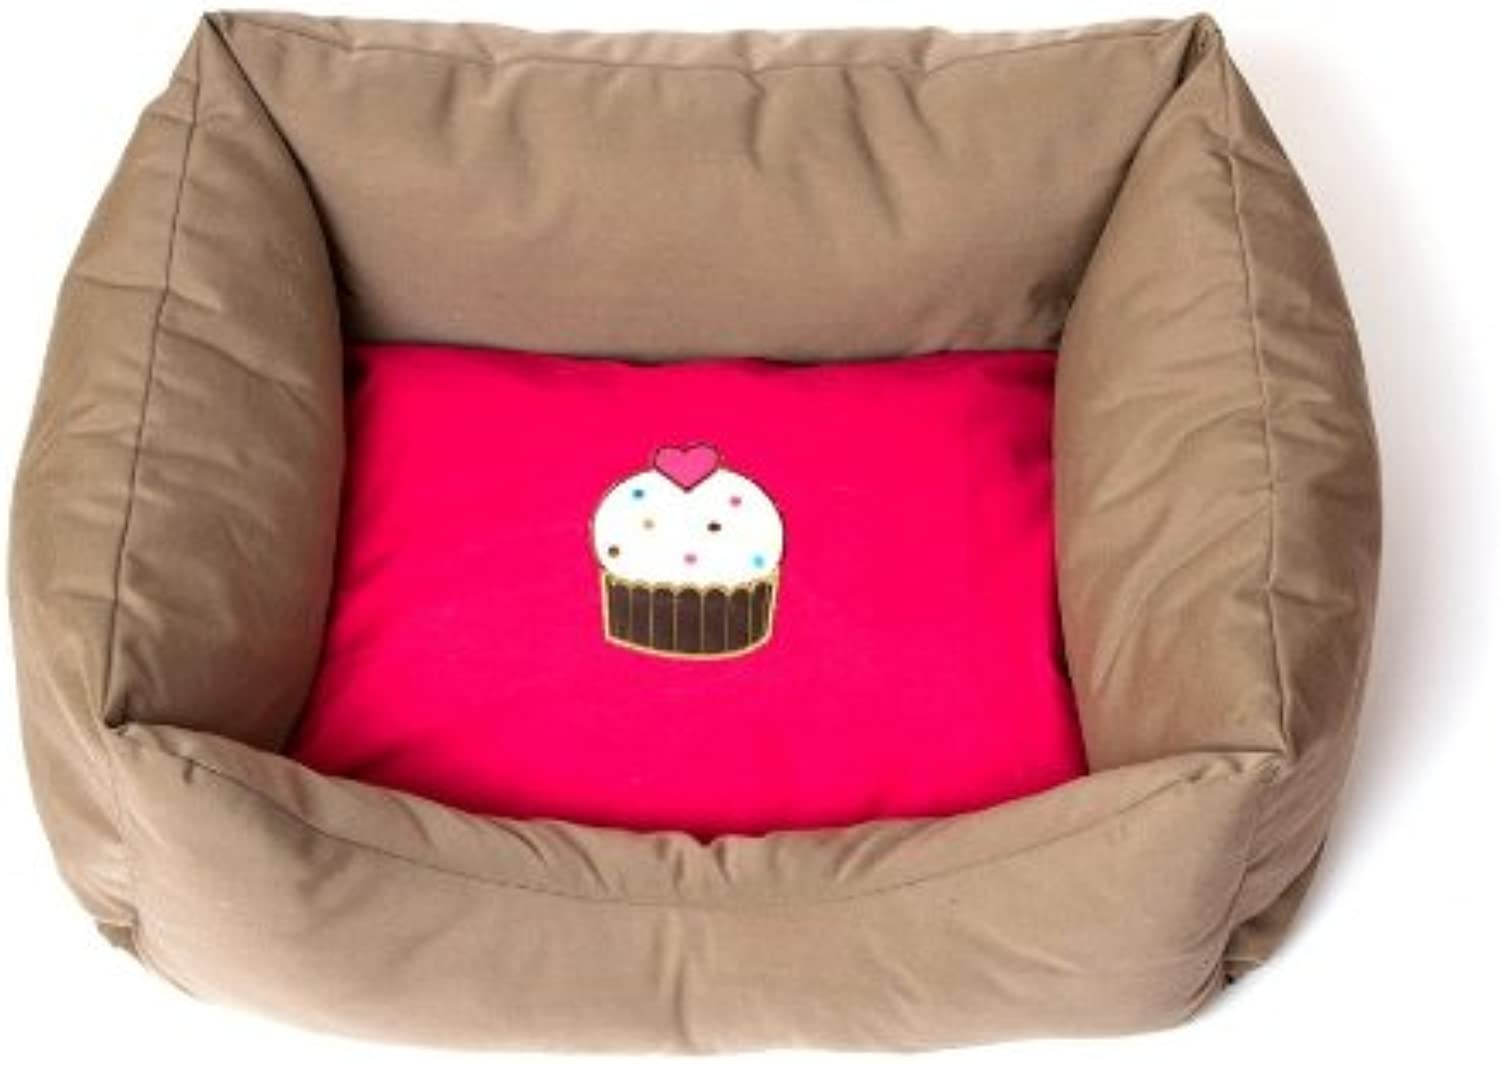 Petuky bluee Cup Cake Dog Bed 28,7 X 23,6 X 9,4